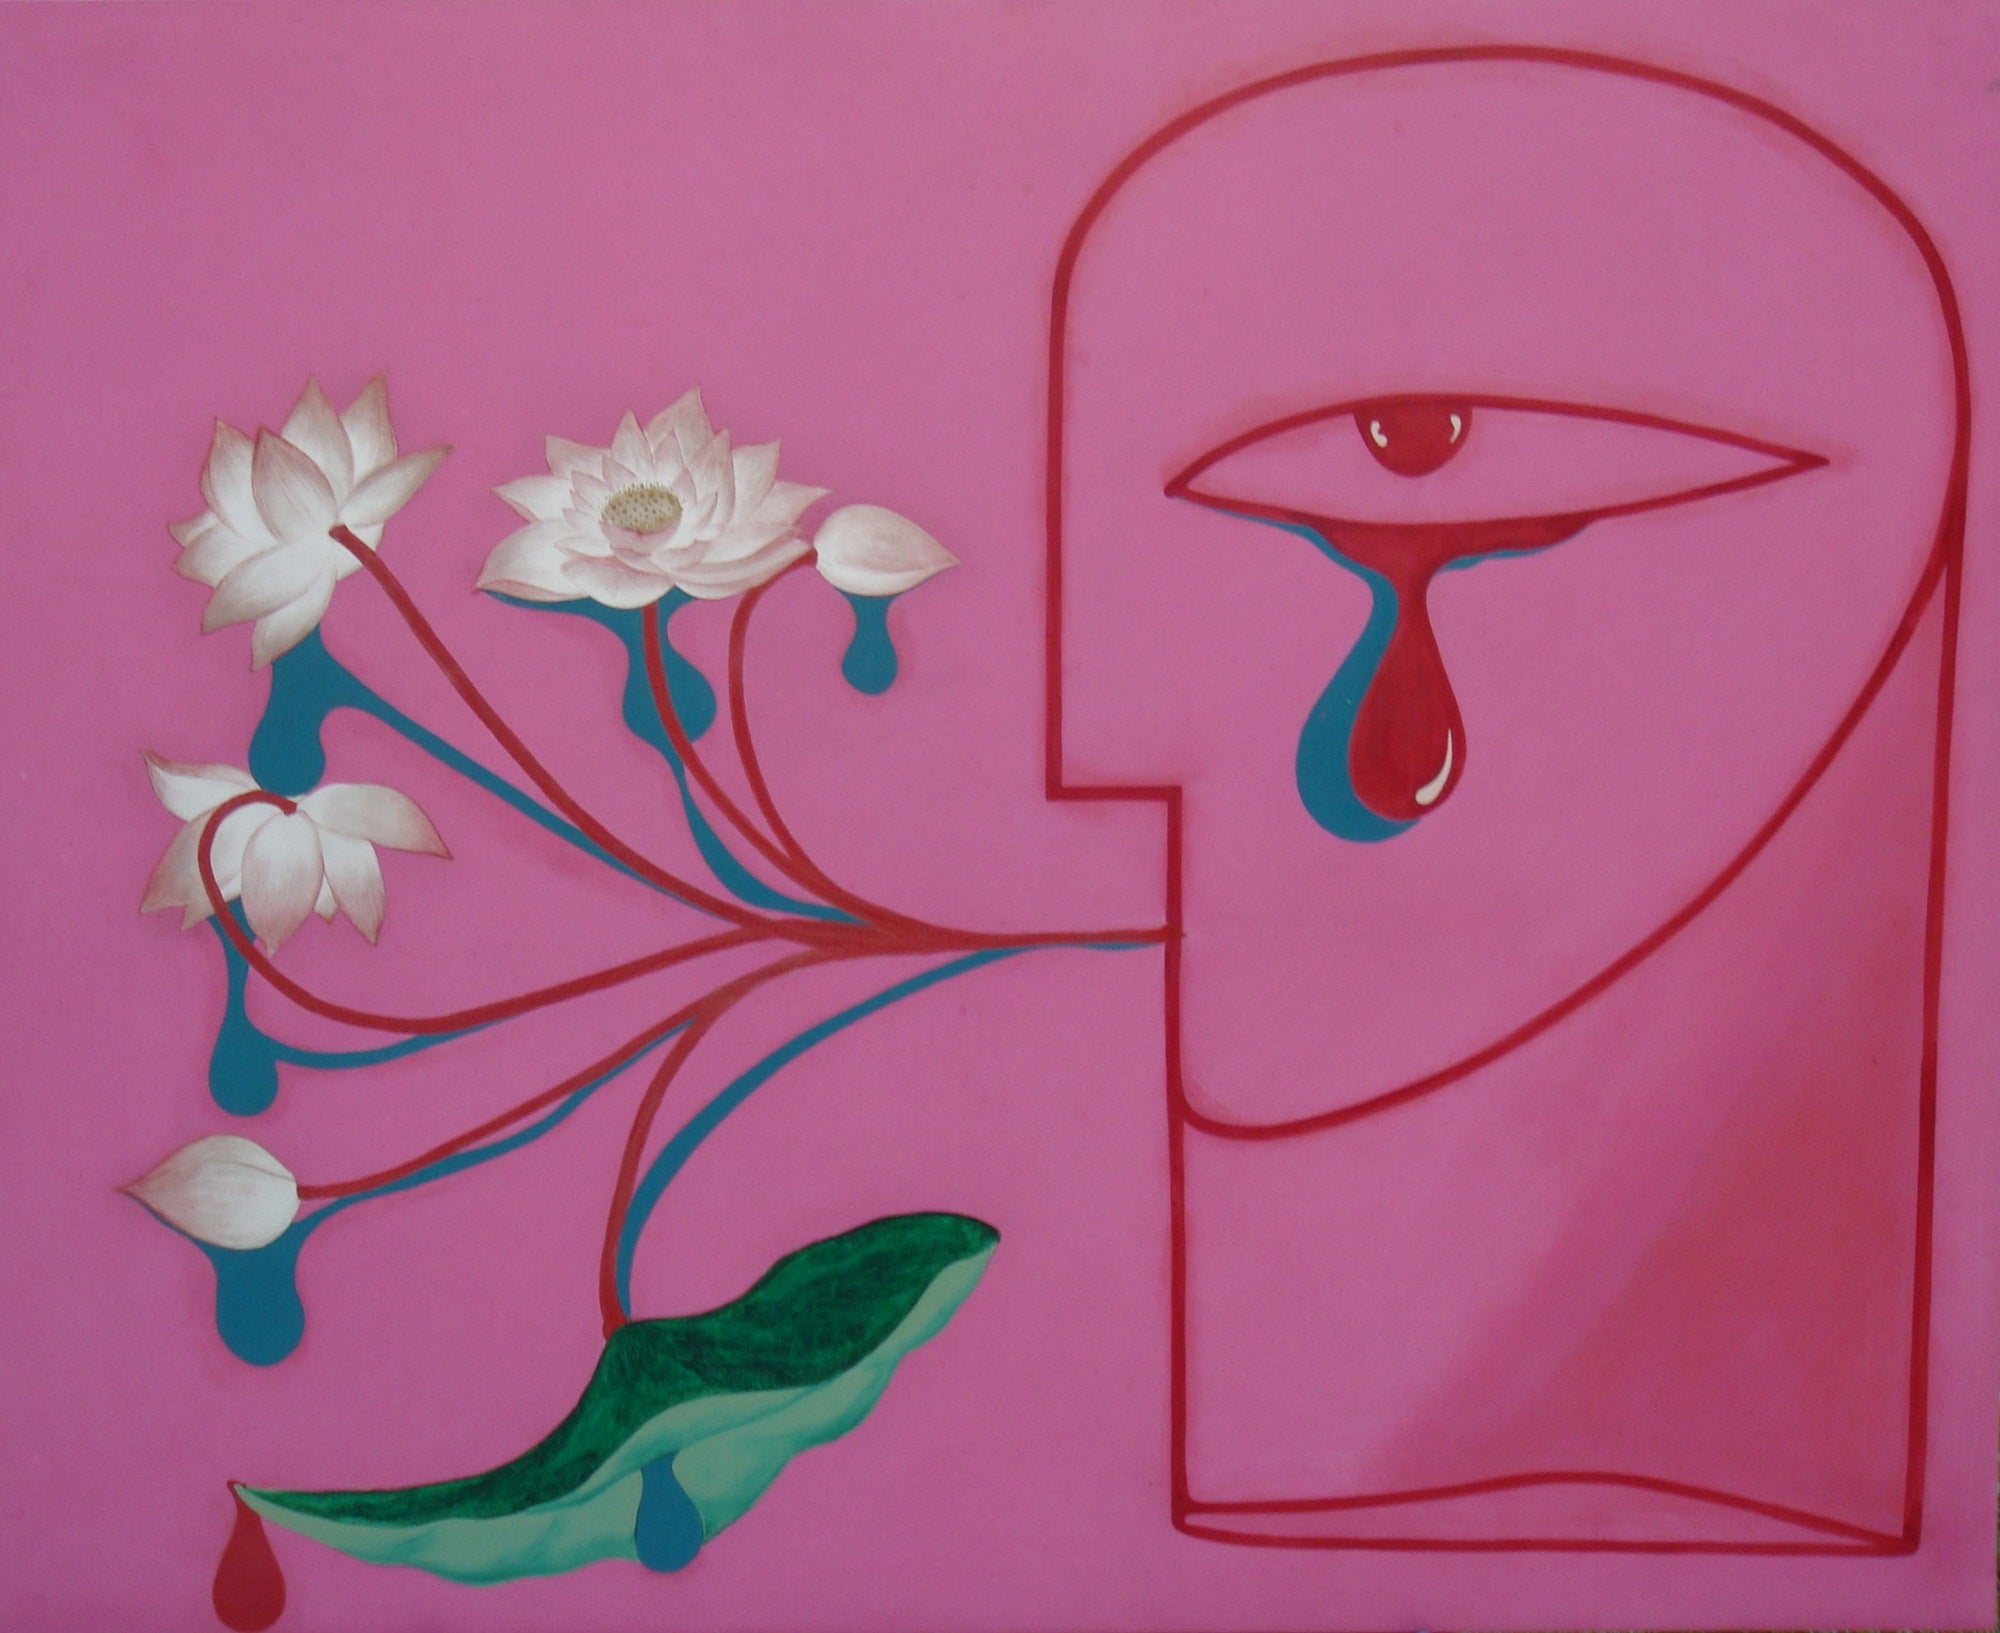 Truong Tan Vietnamese Lotus By Truong Tan Lacquer On Wood Pink